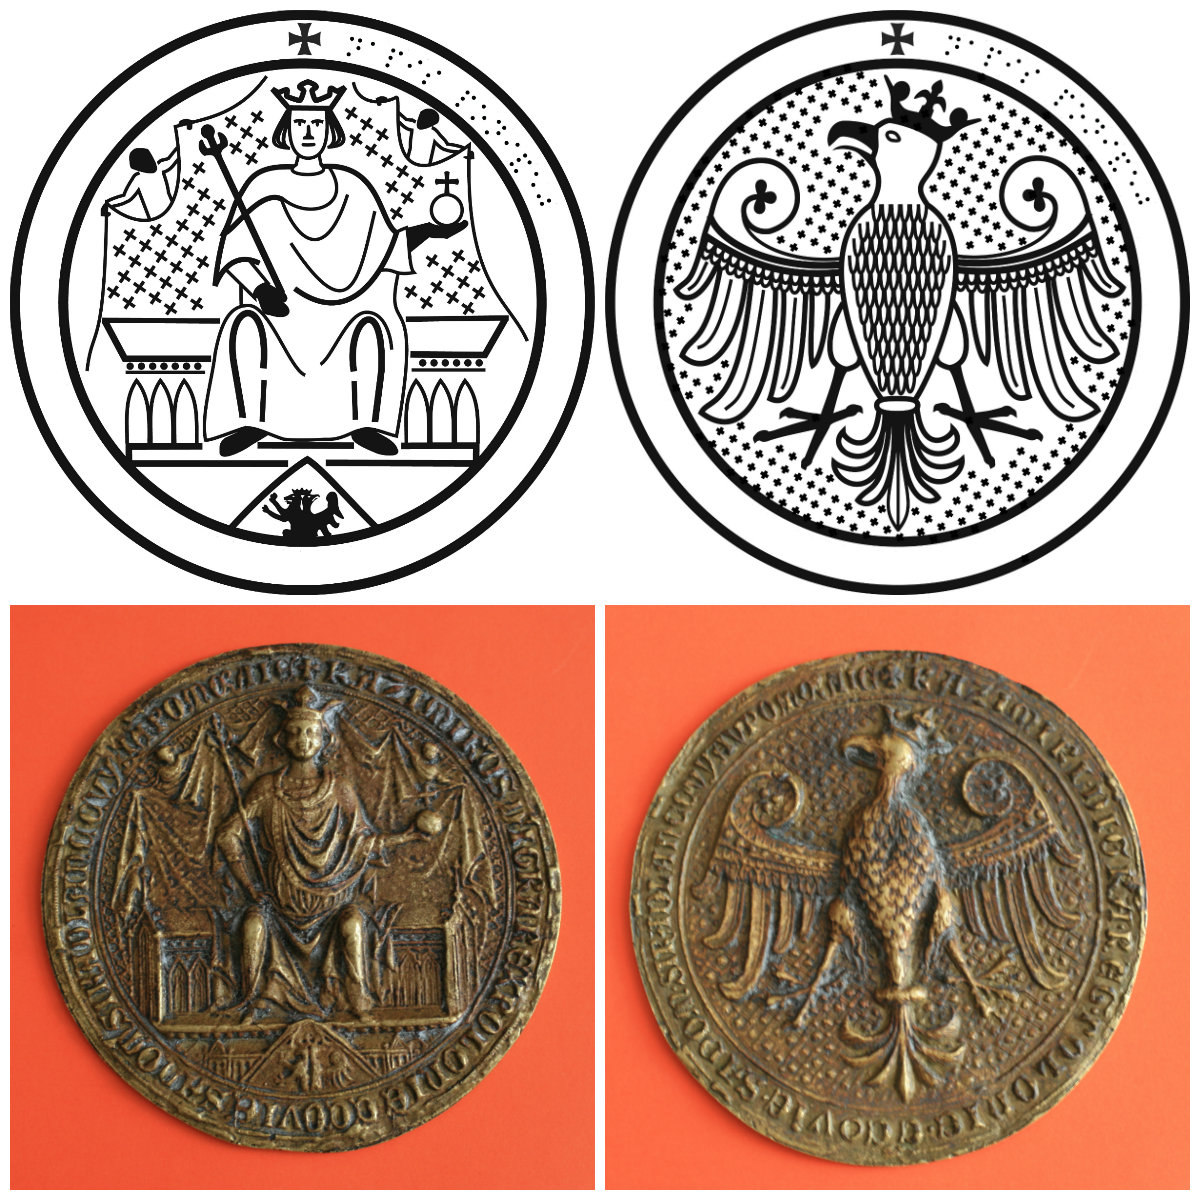 King Casimir the Great's seal of majesty